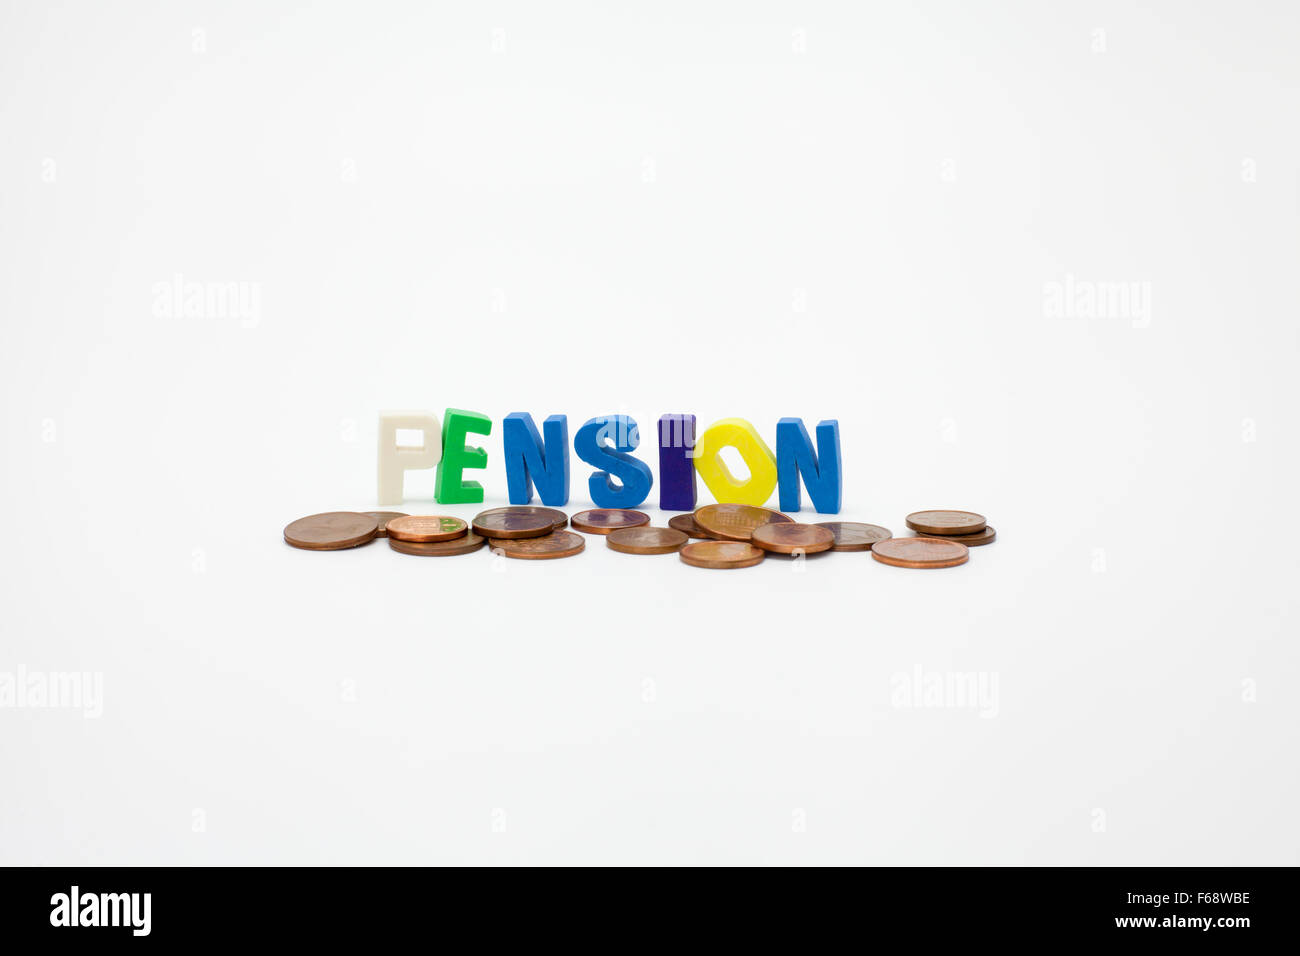 word pension with coins on white background - Stock Image